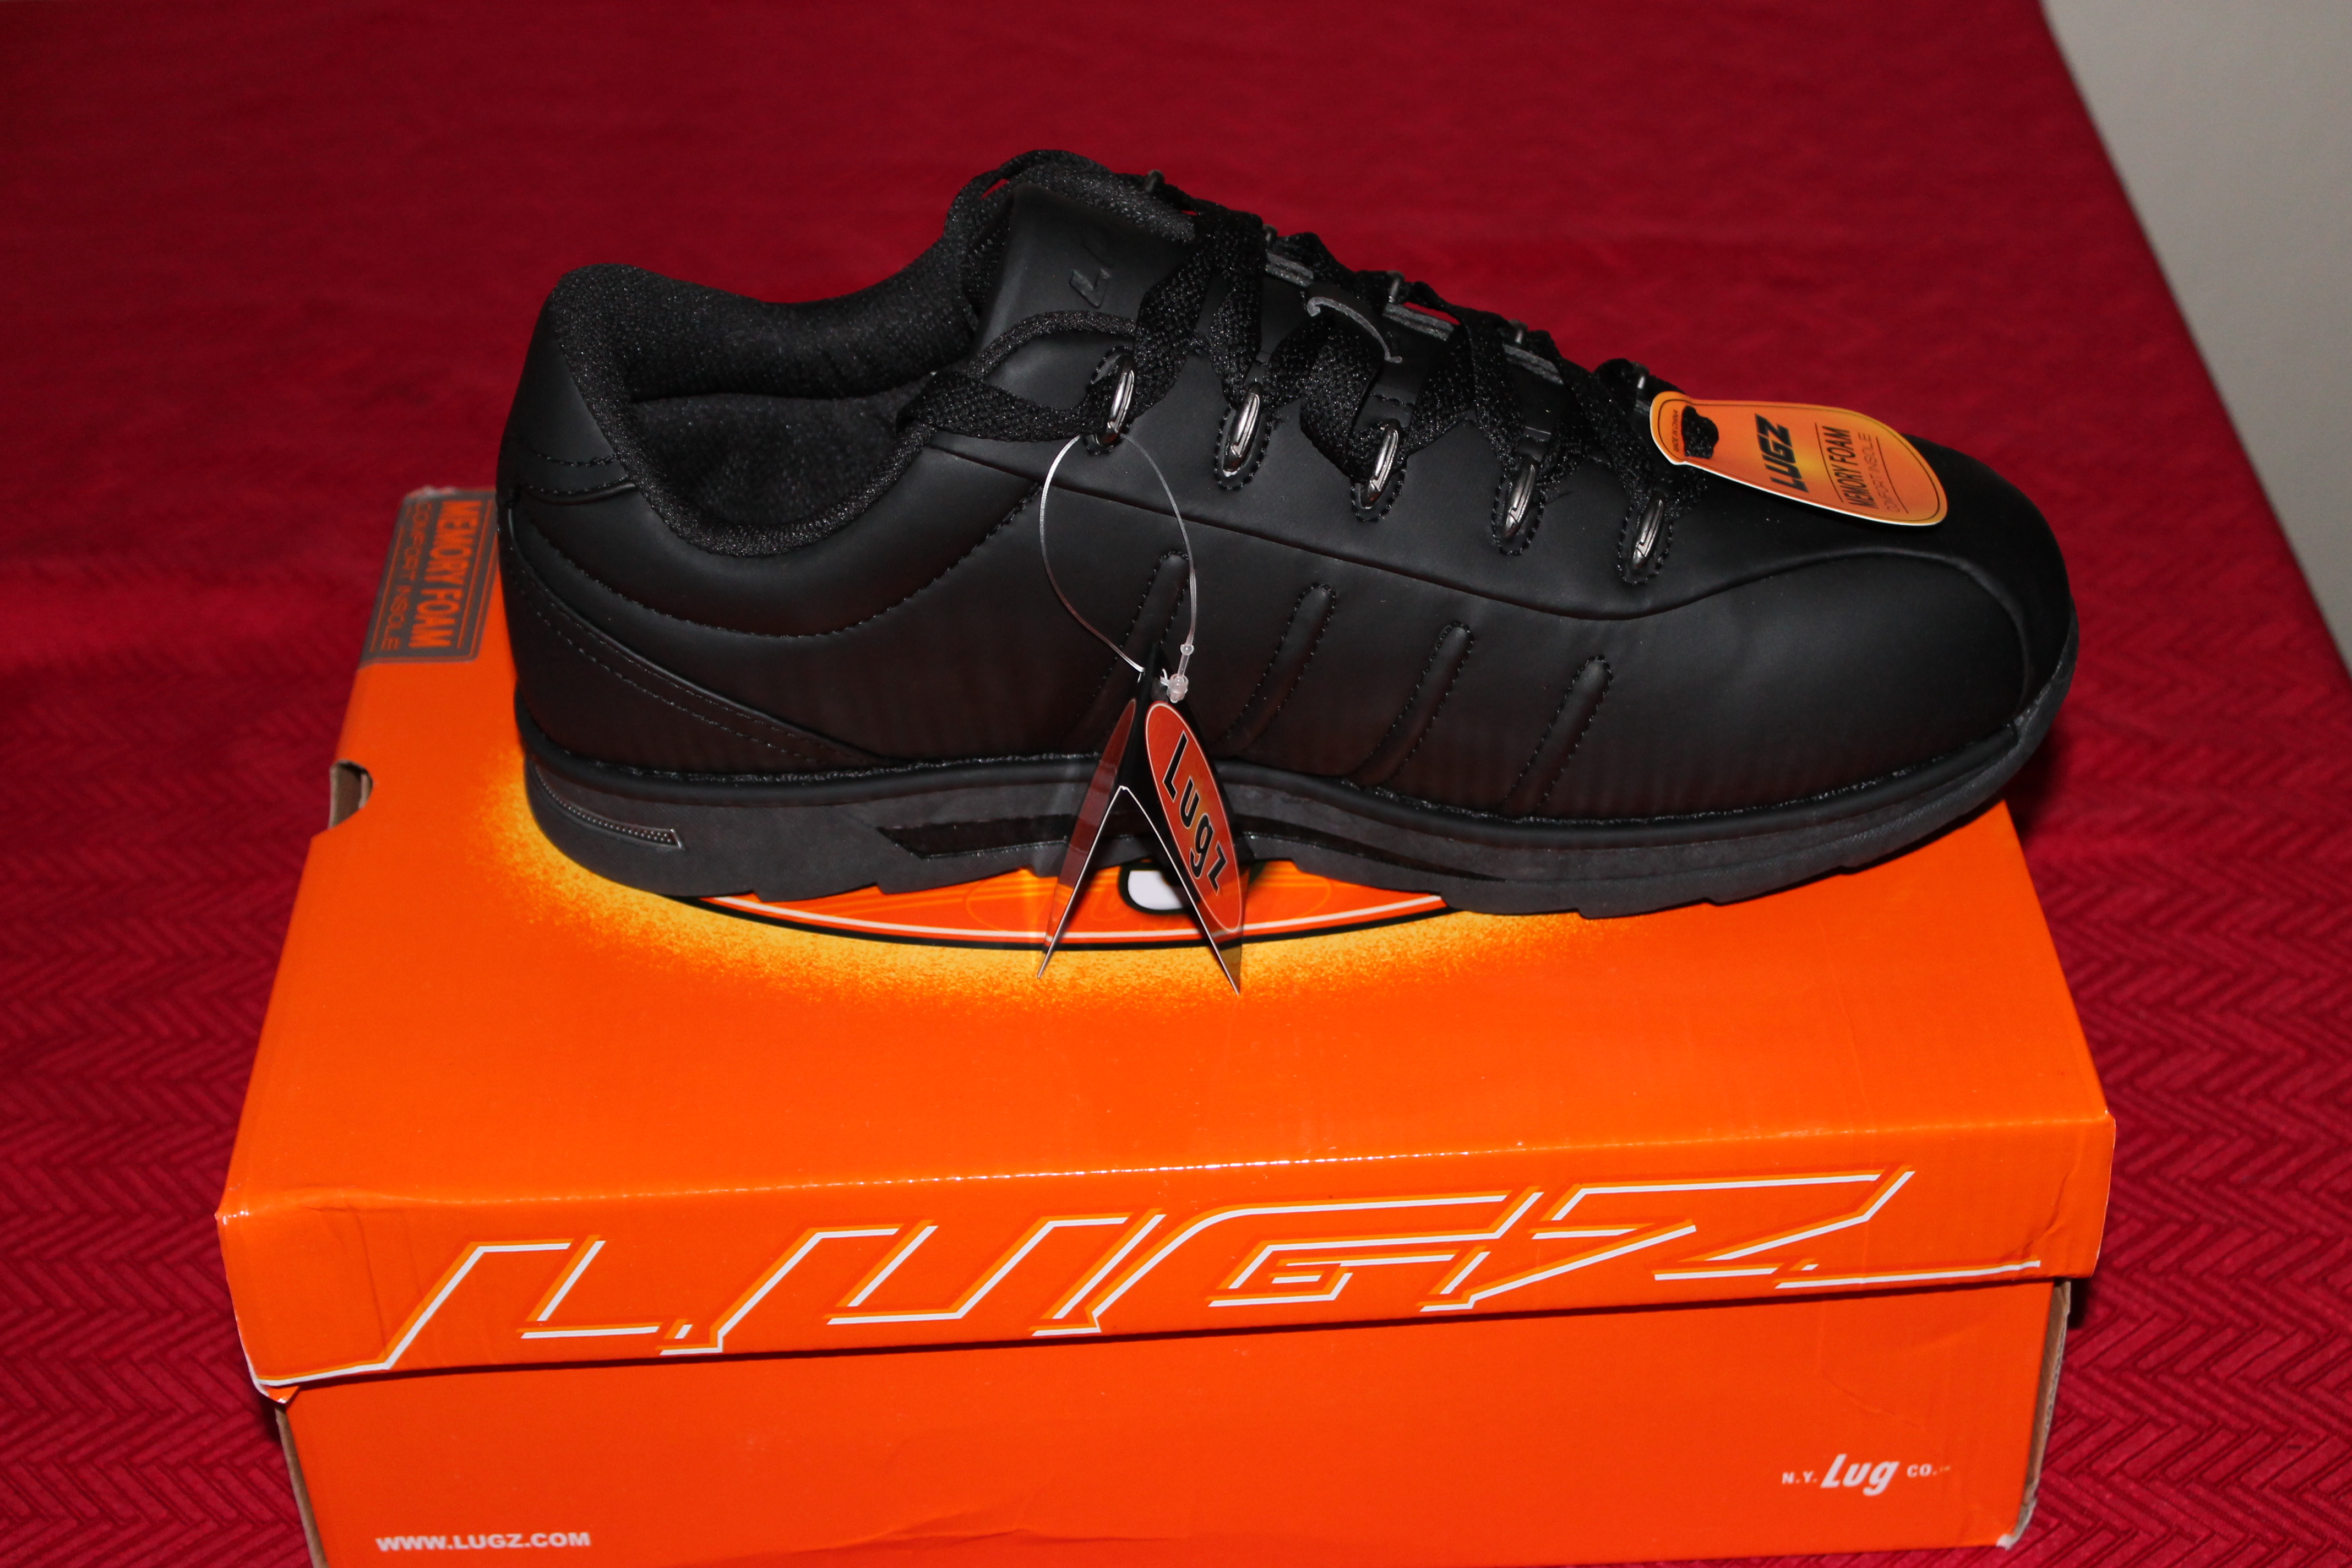 Lugz Black Changeovers, made just for him!!